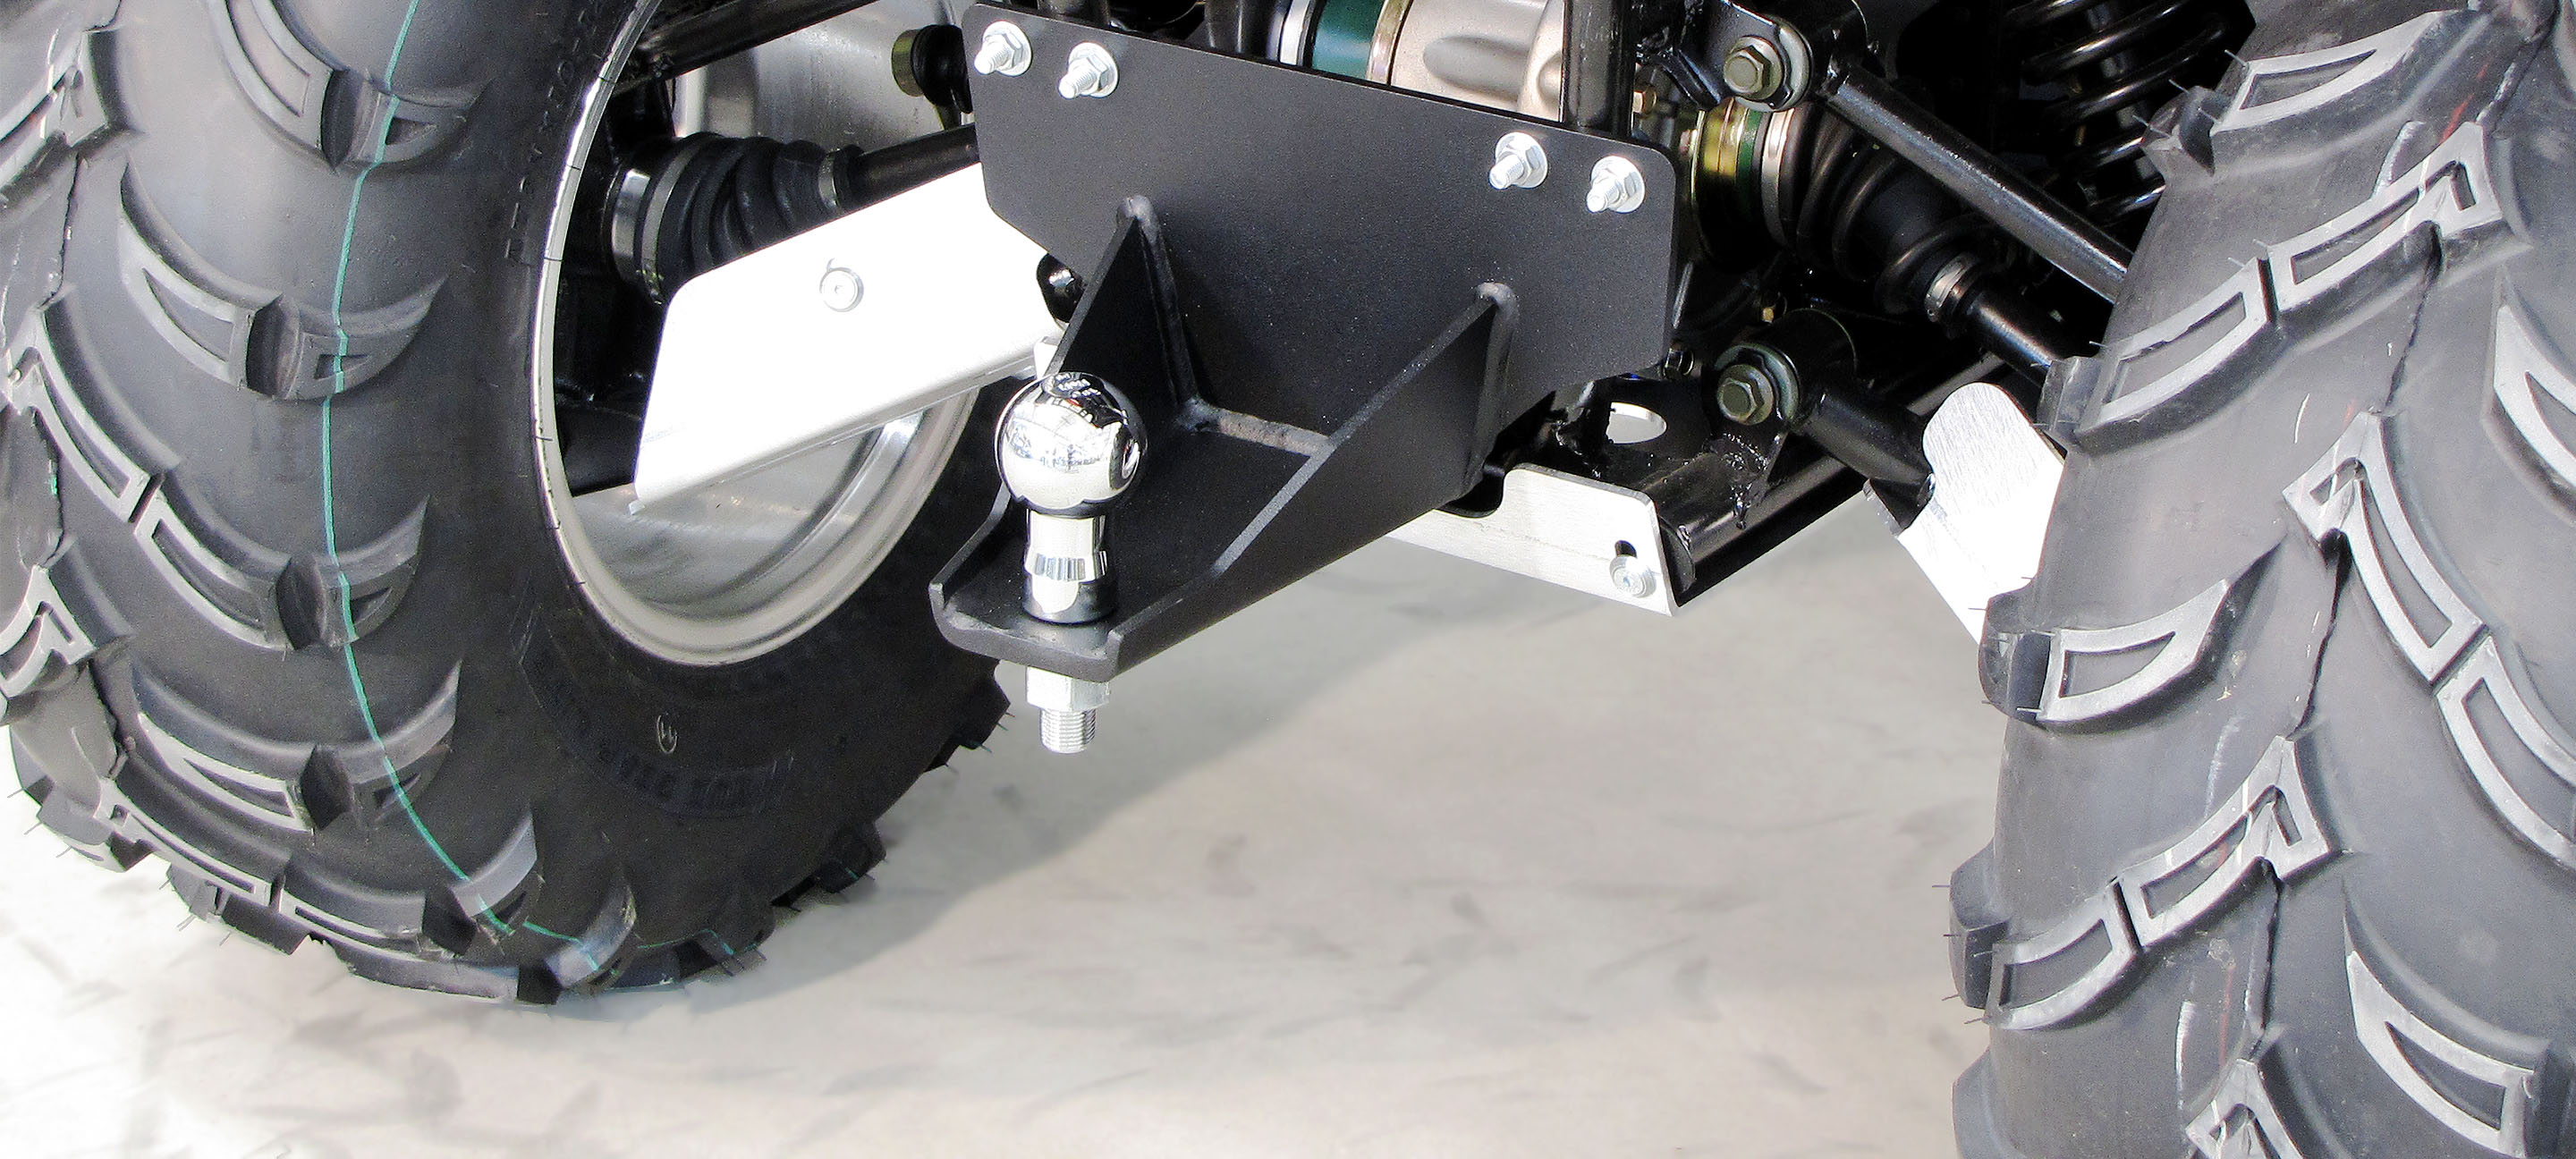 hitch ball mounting kits